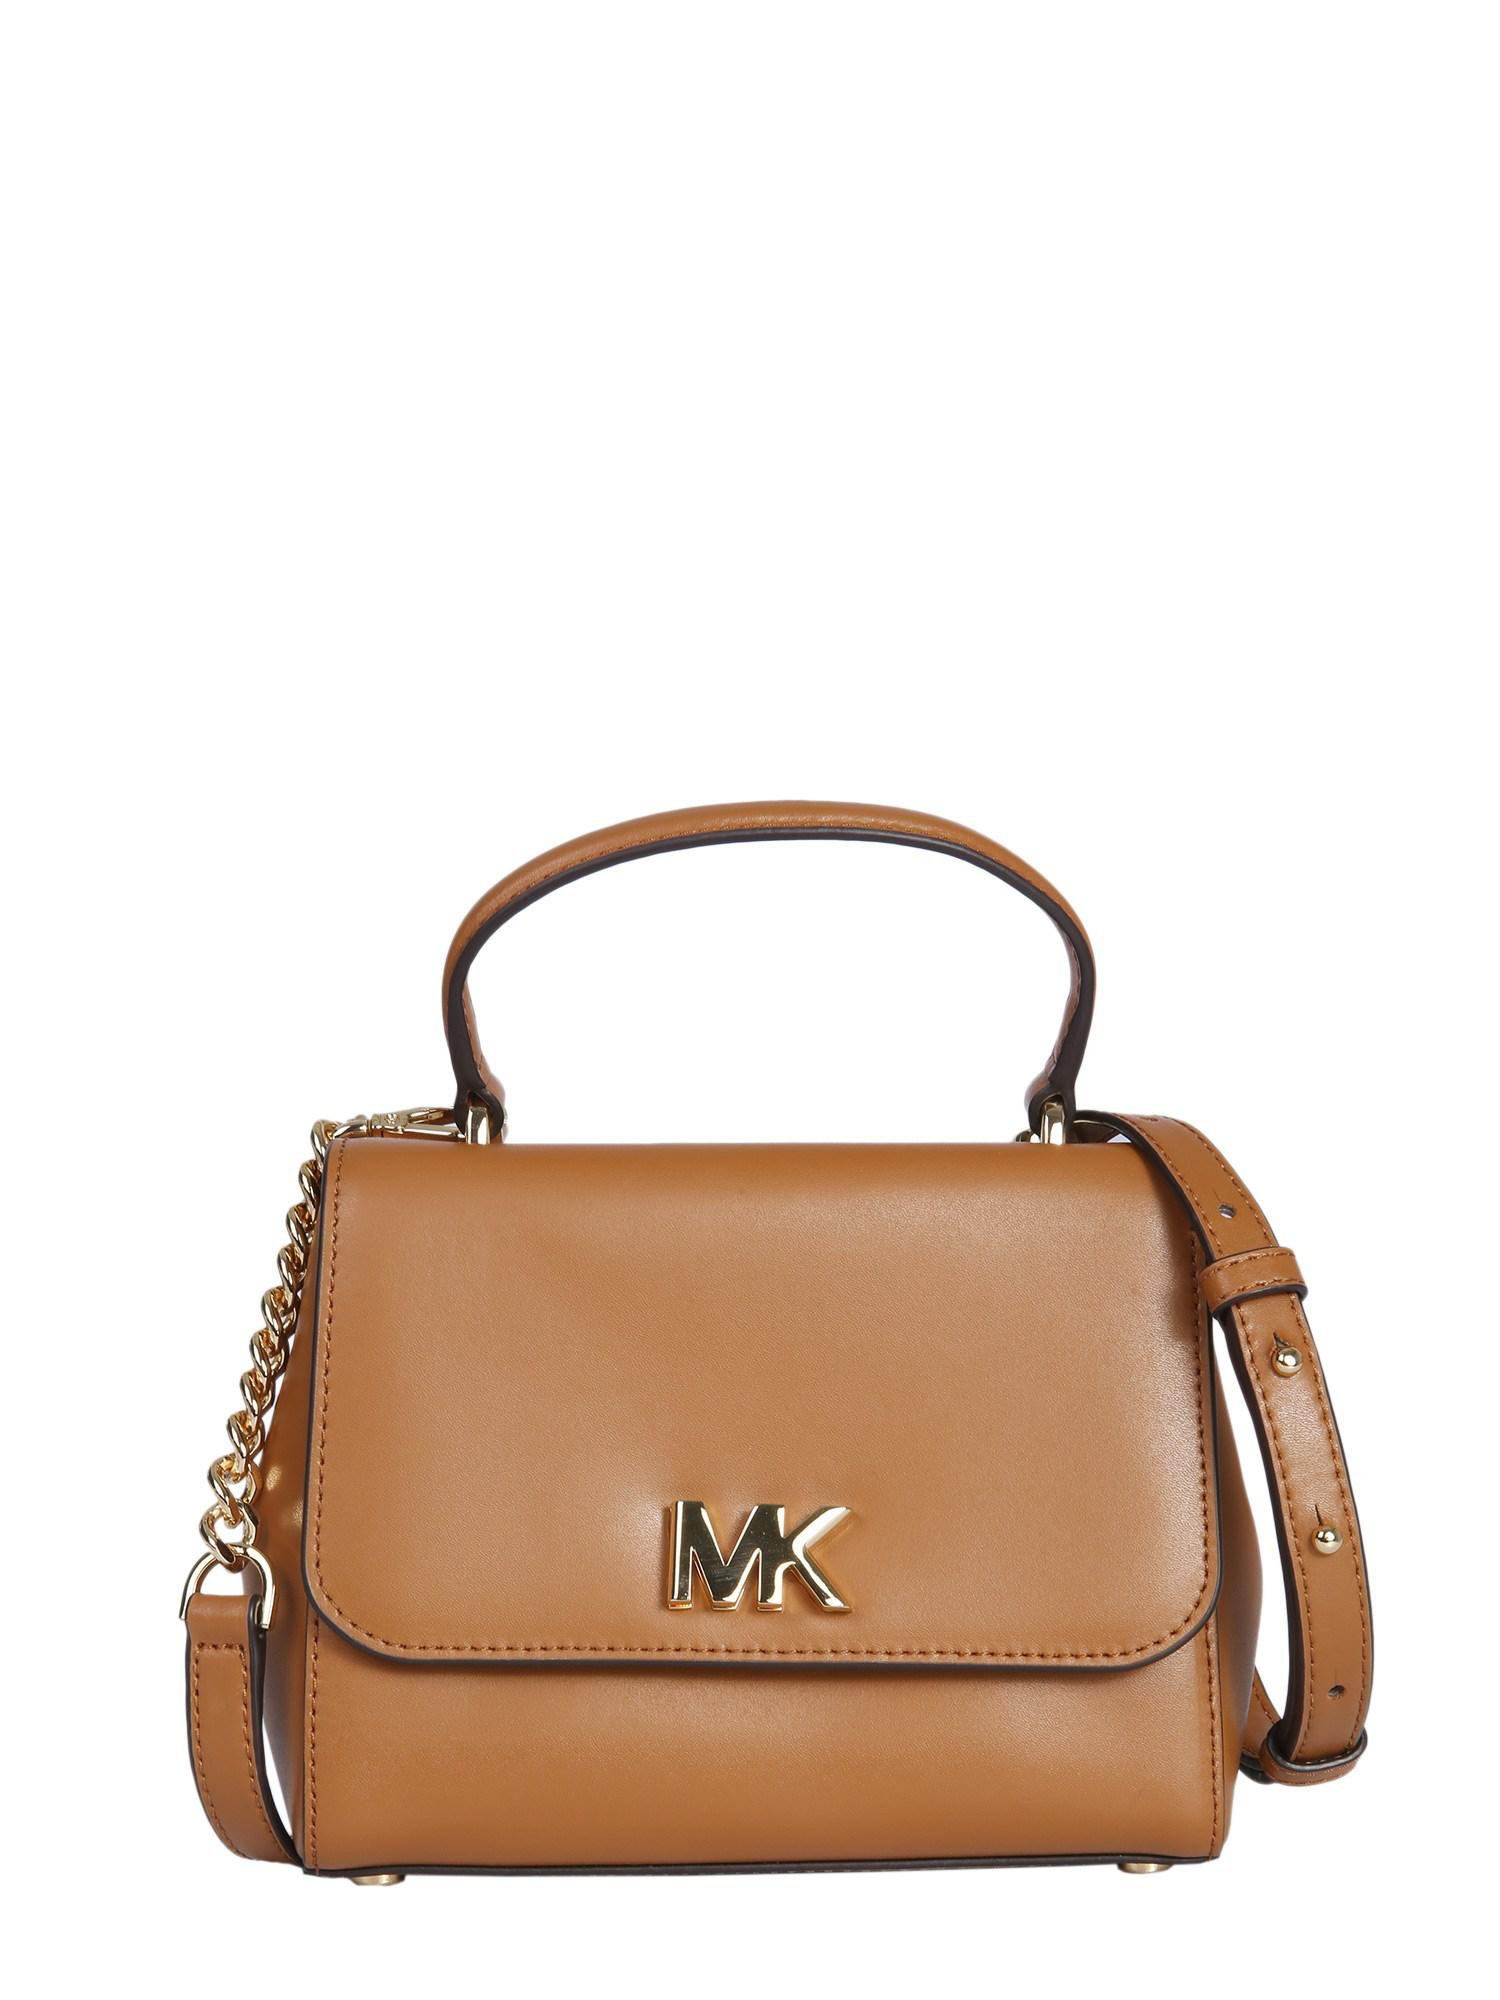 Lyst - MICHAEL Michael Kors Small Mott Leather Bag in Brown bed68600a3e1f